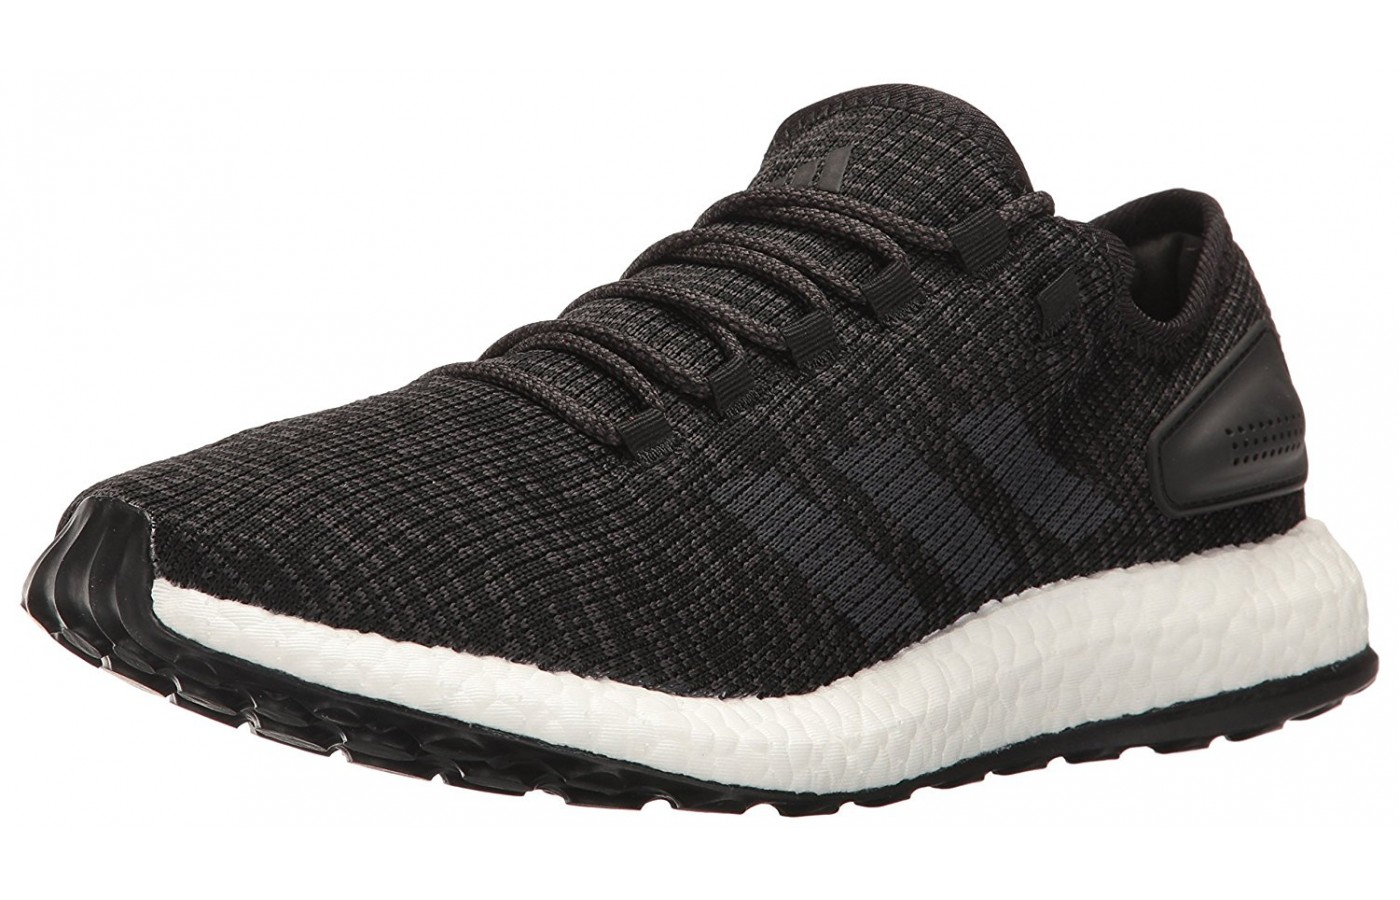 702b155f2e558a ... The sleek upper of the Adidas Pure Boost ...